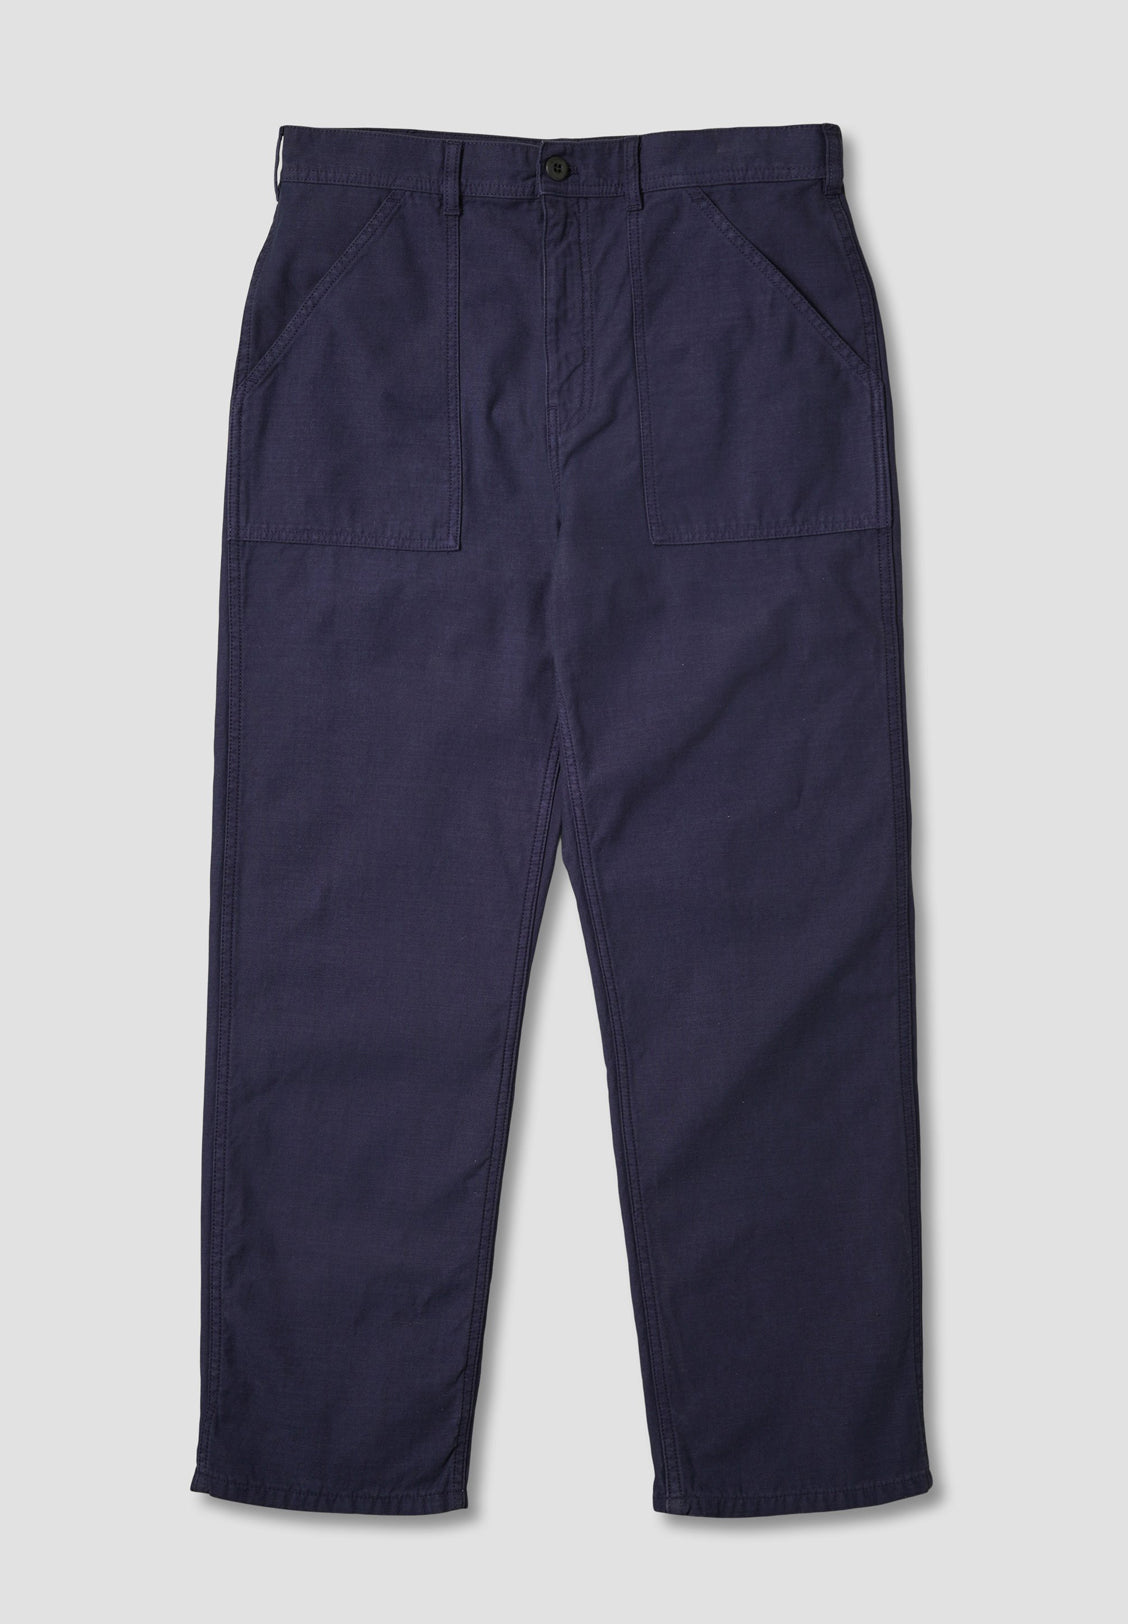 STAN RAY - FAT PANT, NAVY SATEEN